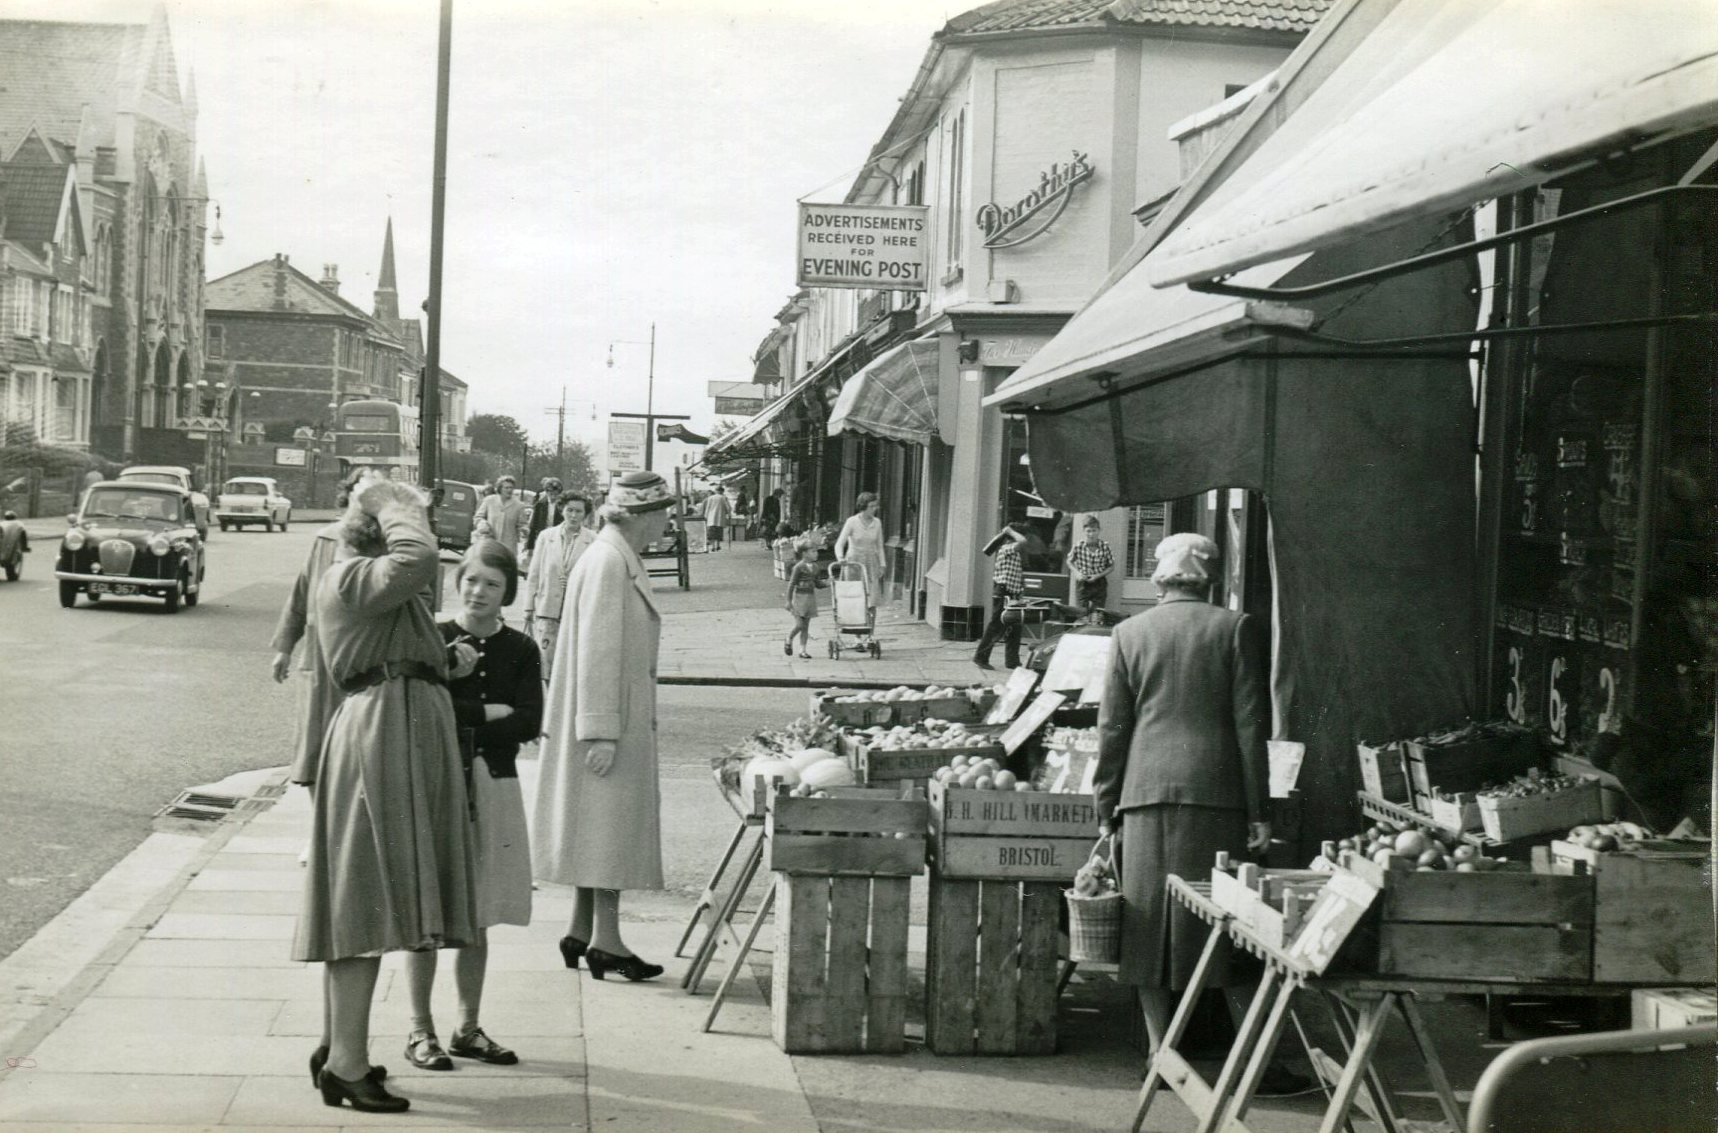 218, Gloucester Road dated 1960